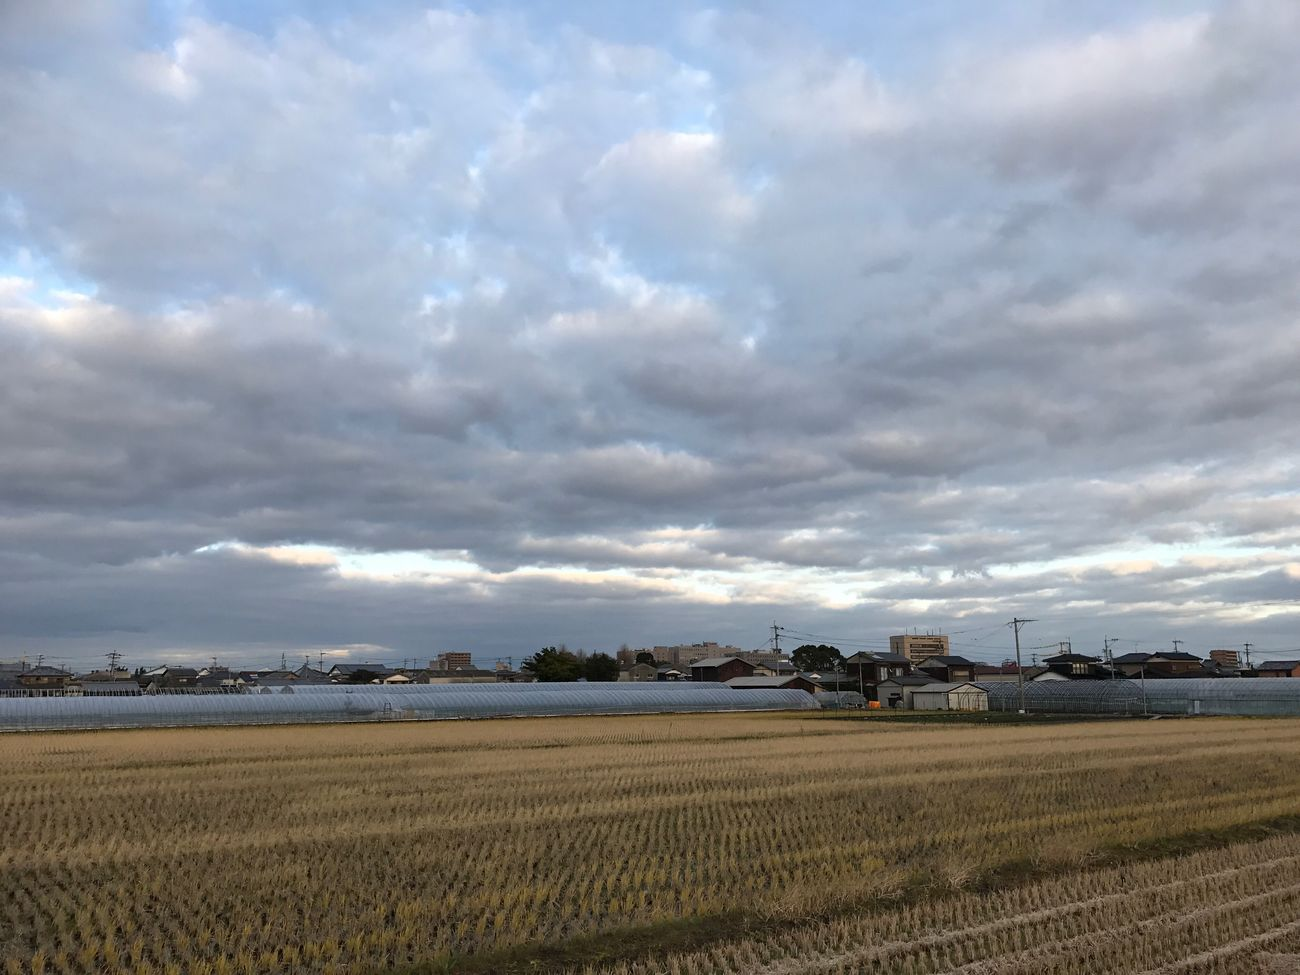 ふるさと Farm Field Sky Agriculture Rural Scene Cloud - Sky Nature Landscape No People Growth Outdoors Scenics Day Iphone7 Behappy Japan 福岡県 12月 ランニング ウォーキング 晴れ Tractor